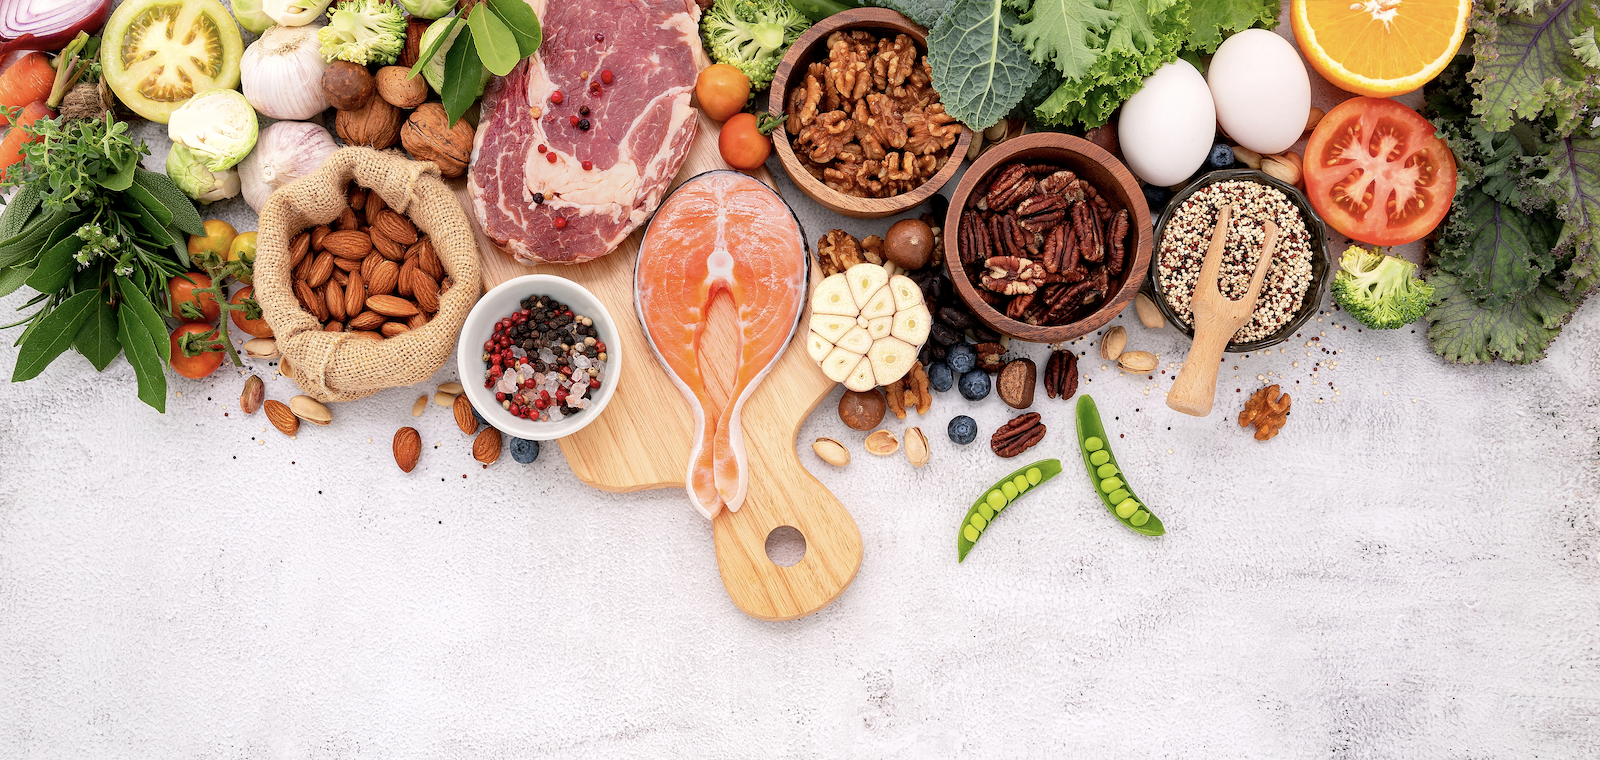 Autoimmune atrophic gastritis diet: Various healthy food ingredients on a dirty white surface